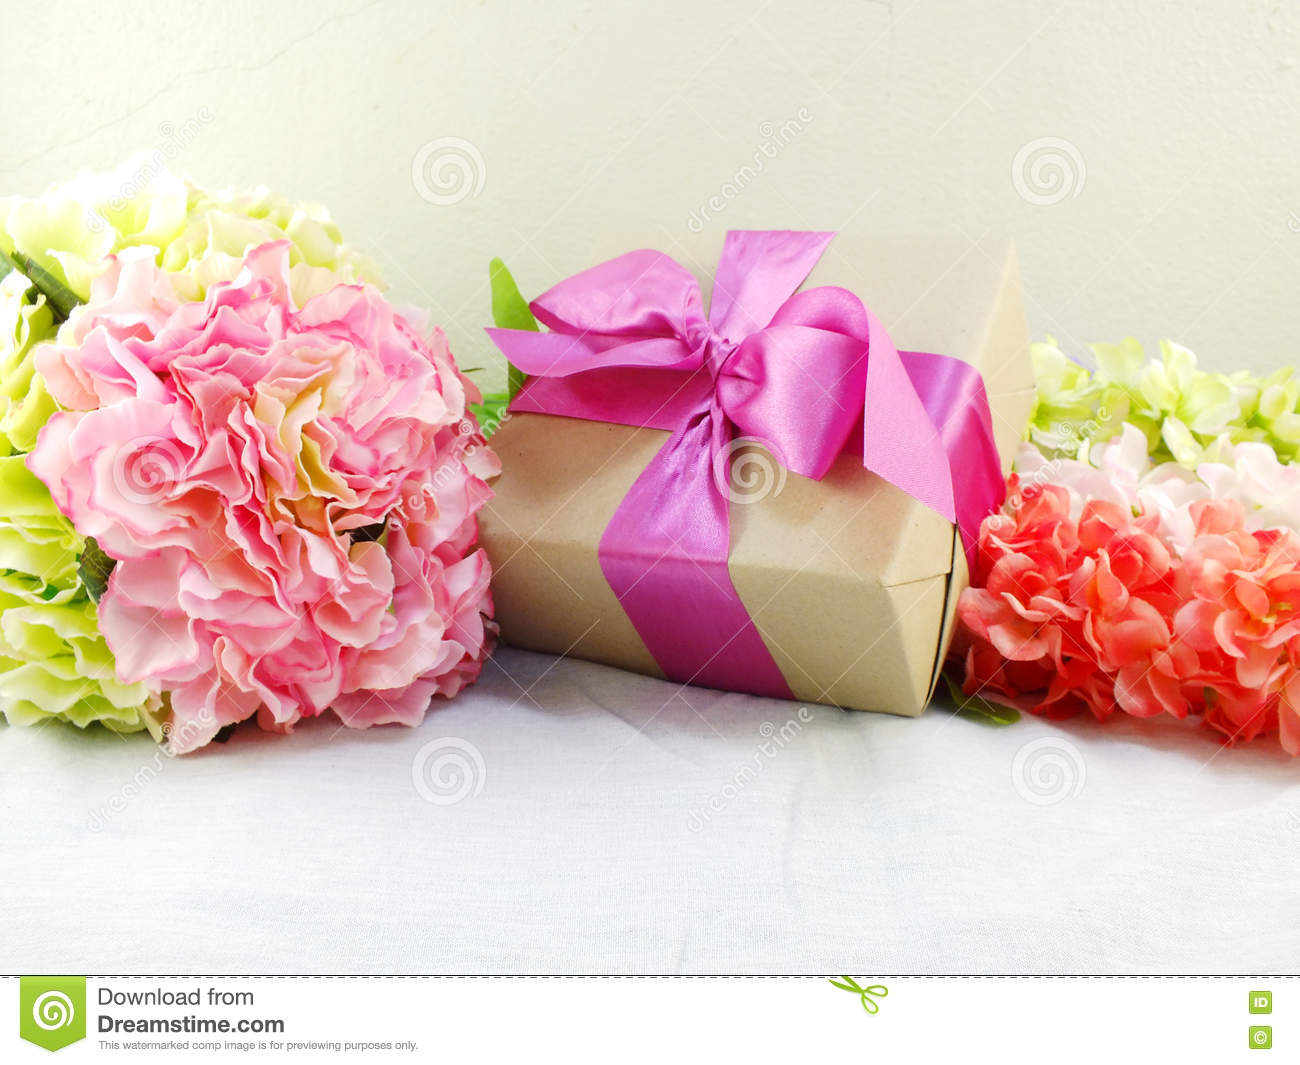 Gifts and beautiful bouquet of flowers for mom for mother day or gifts and beautiful bouquet of flowers for mom royalty free stock images dhlflorist Choice Image